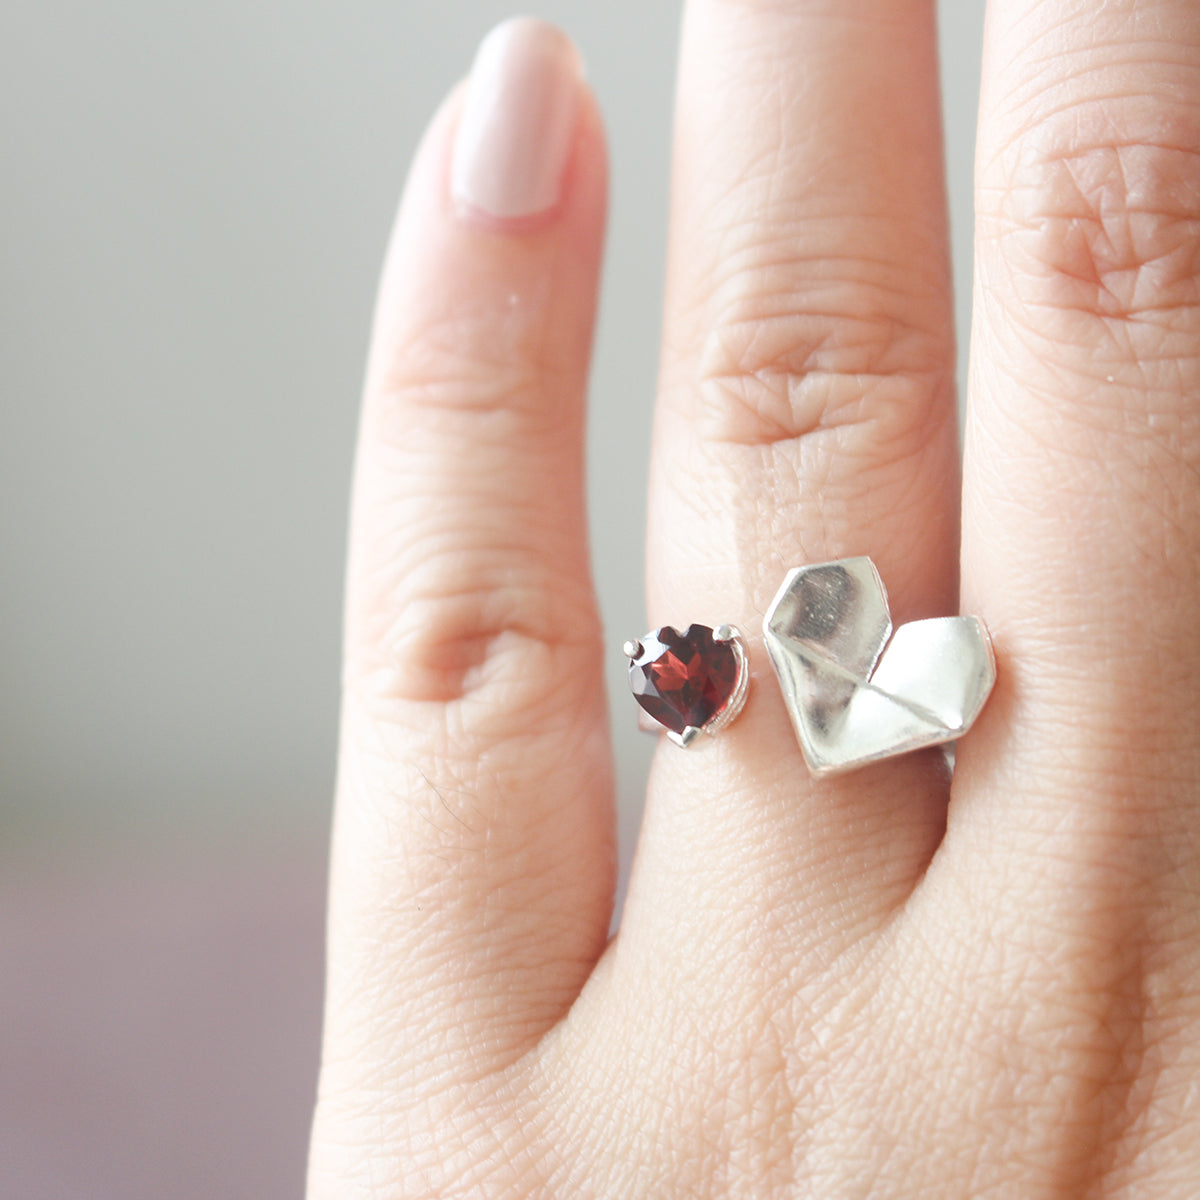 925 Silver Origami Heart Open Ring with Natural Heart Shaped Red Garnet